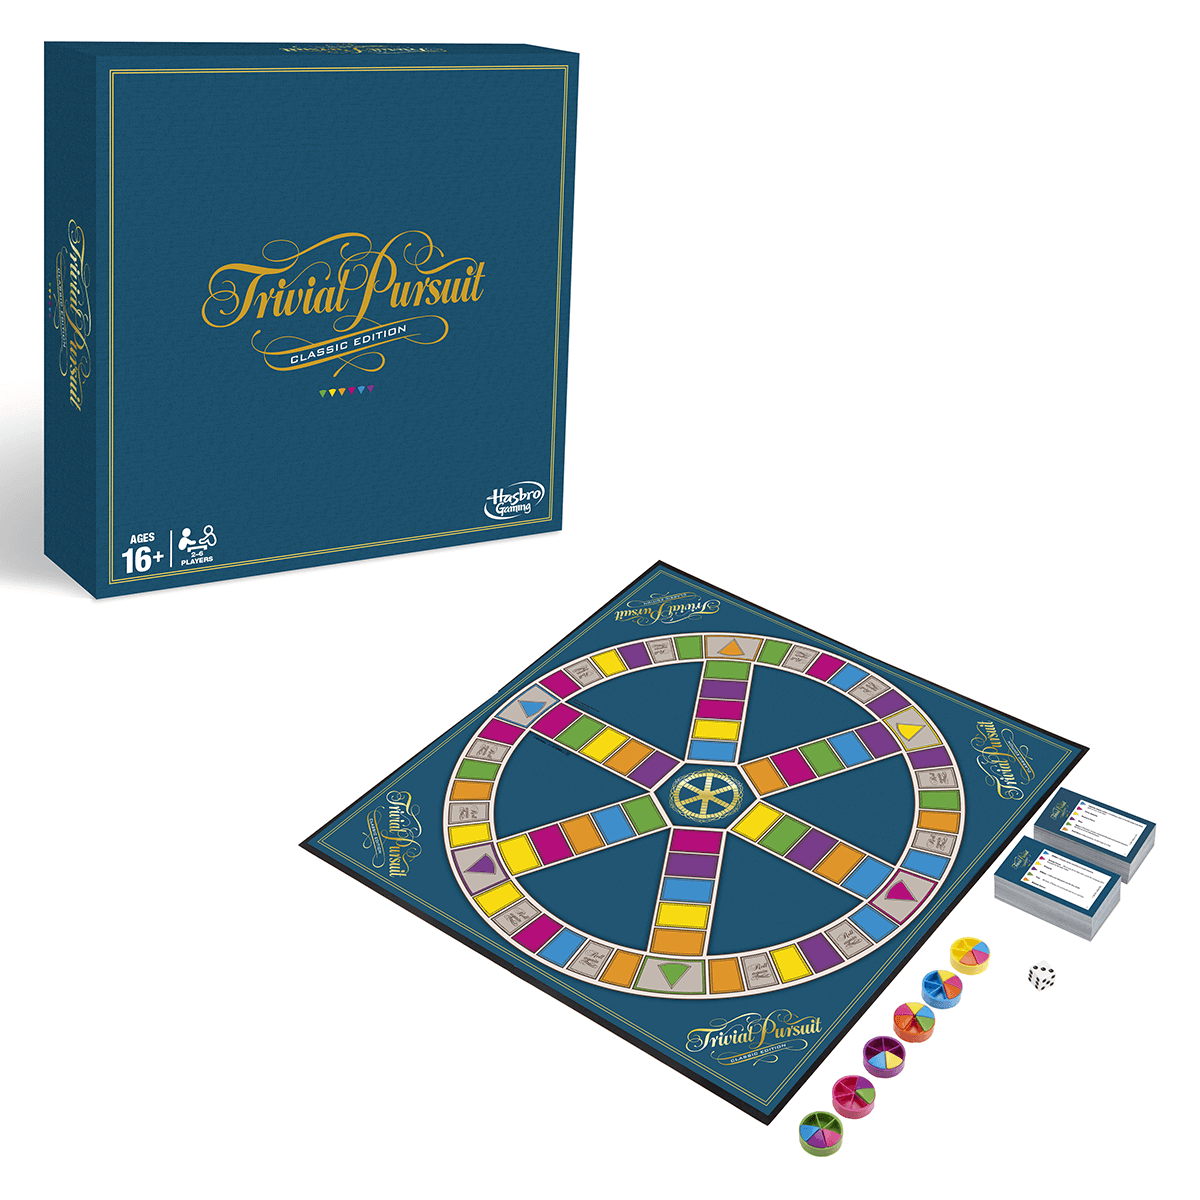 Image result for trivial pursuit game